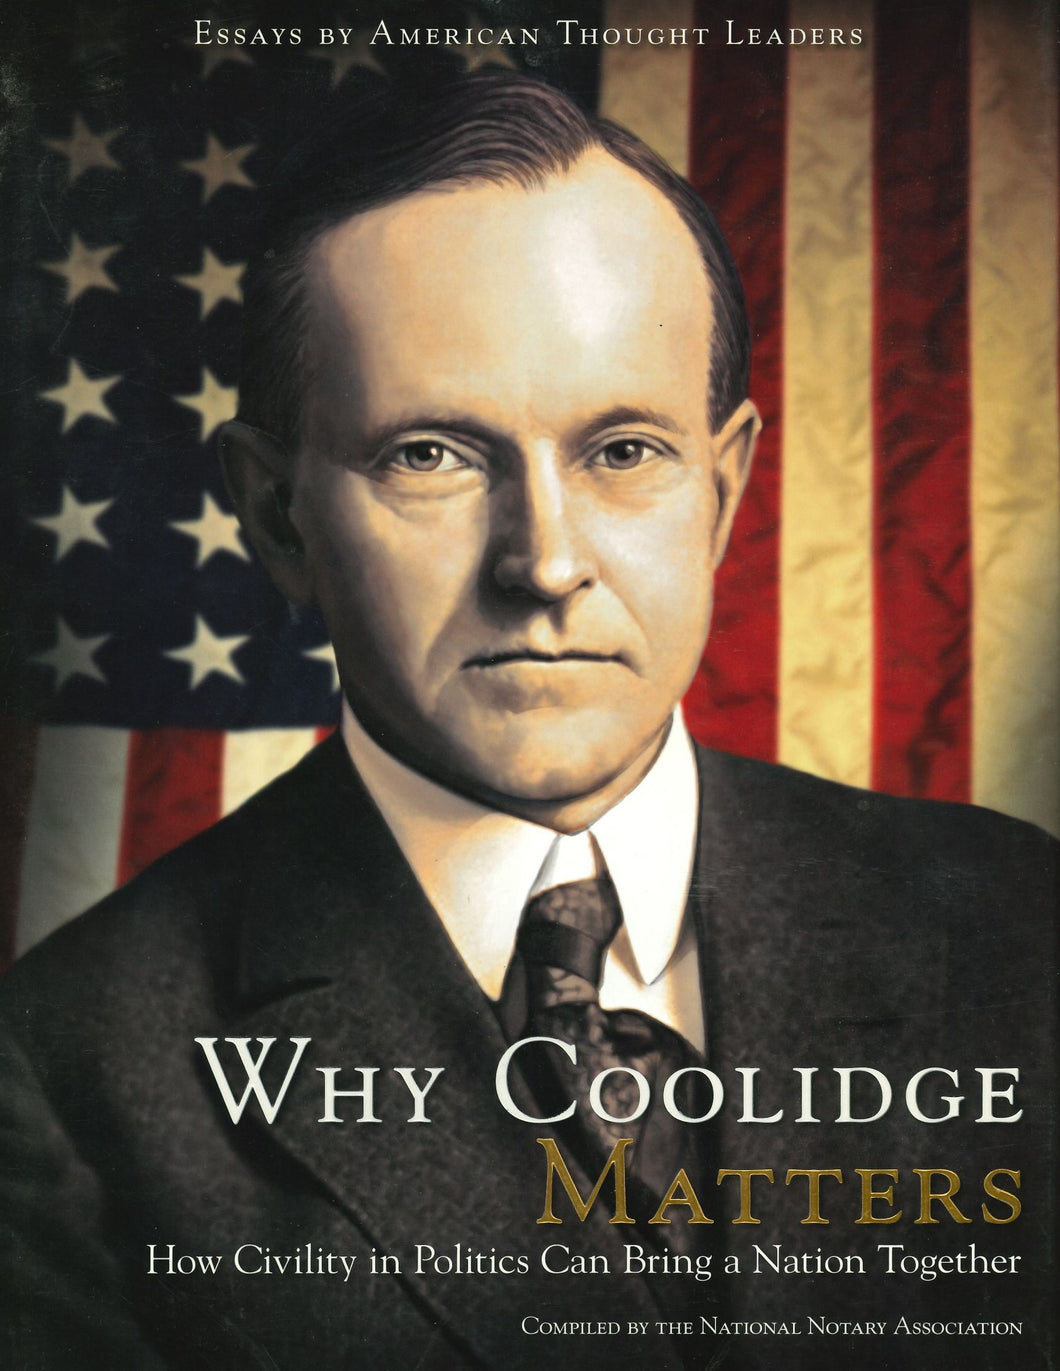 Why Coolidge Matters, compiled by the National Notary Association